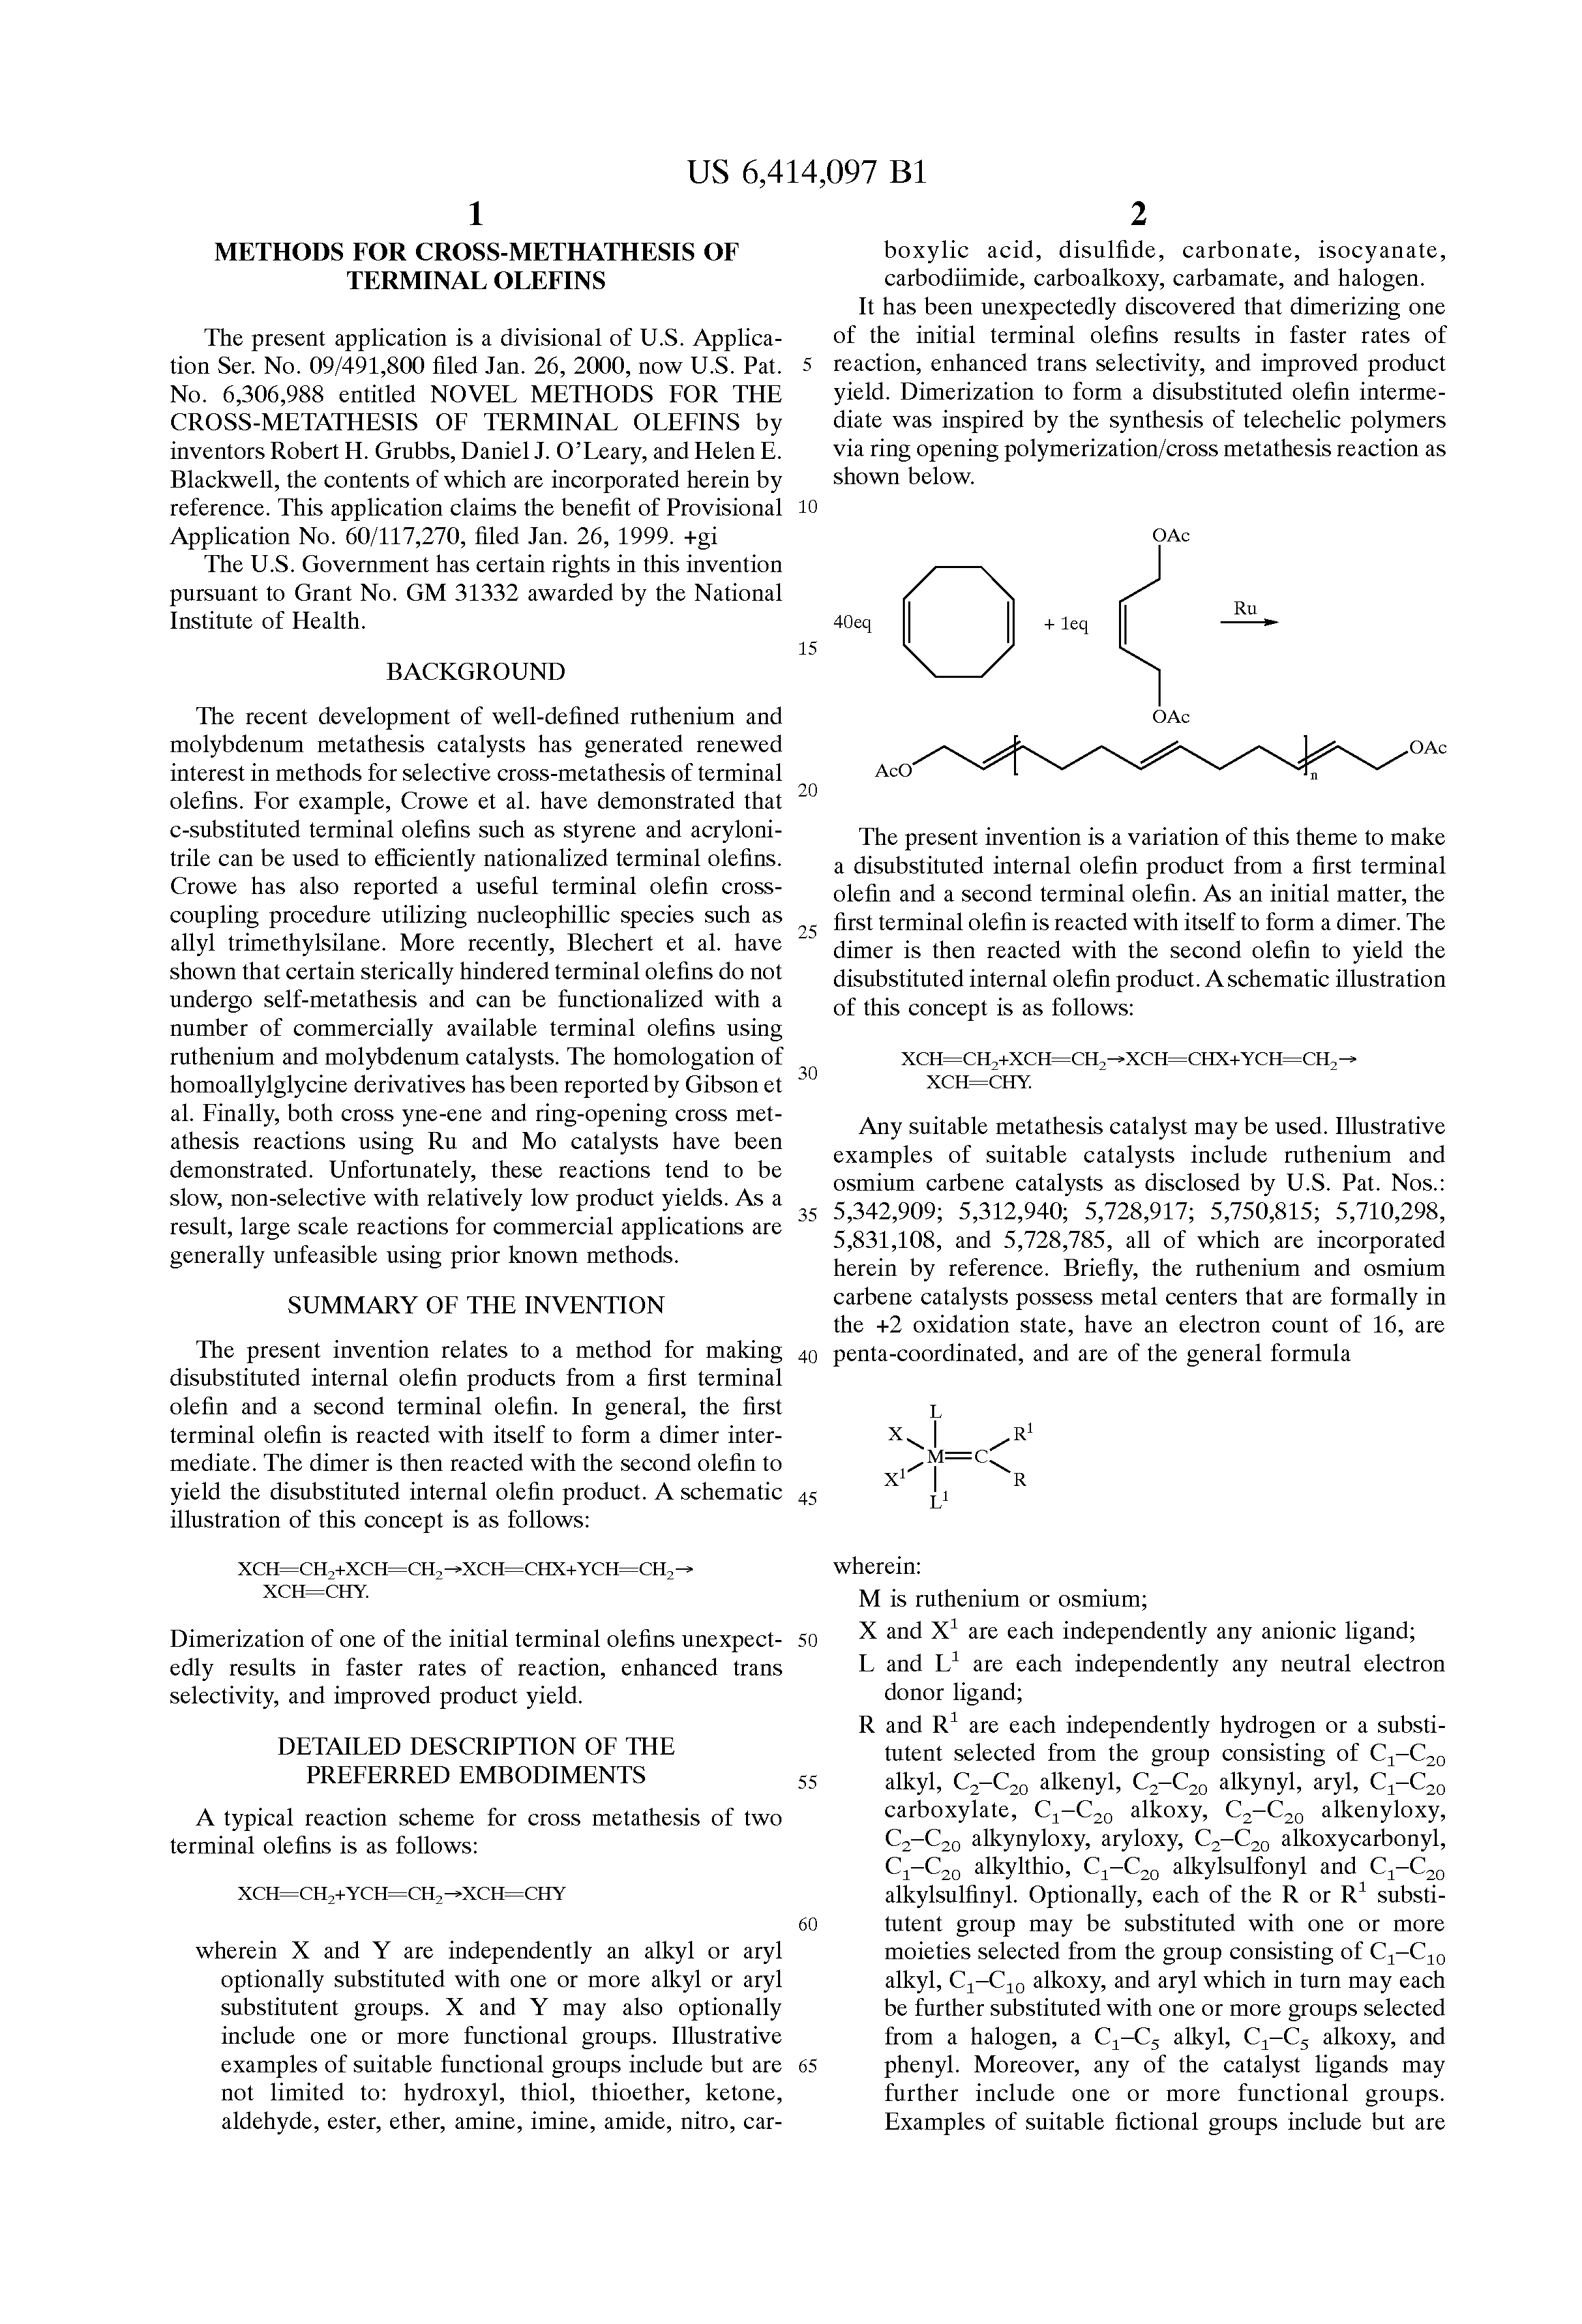 of methathesis Olefin metathesis in organic synthesis wendy jen macmillan group meeting january 17, 2001 i well-defined alkene metathesis catalysts ii applications of olefin metathesis a ring closing metathesis b cross metathesis c ring opening metathesis recent reviews: furstner, a angew chem int ed 2000, 39, 3013.